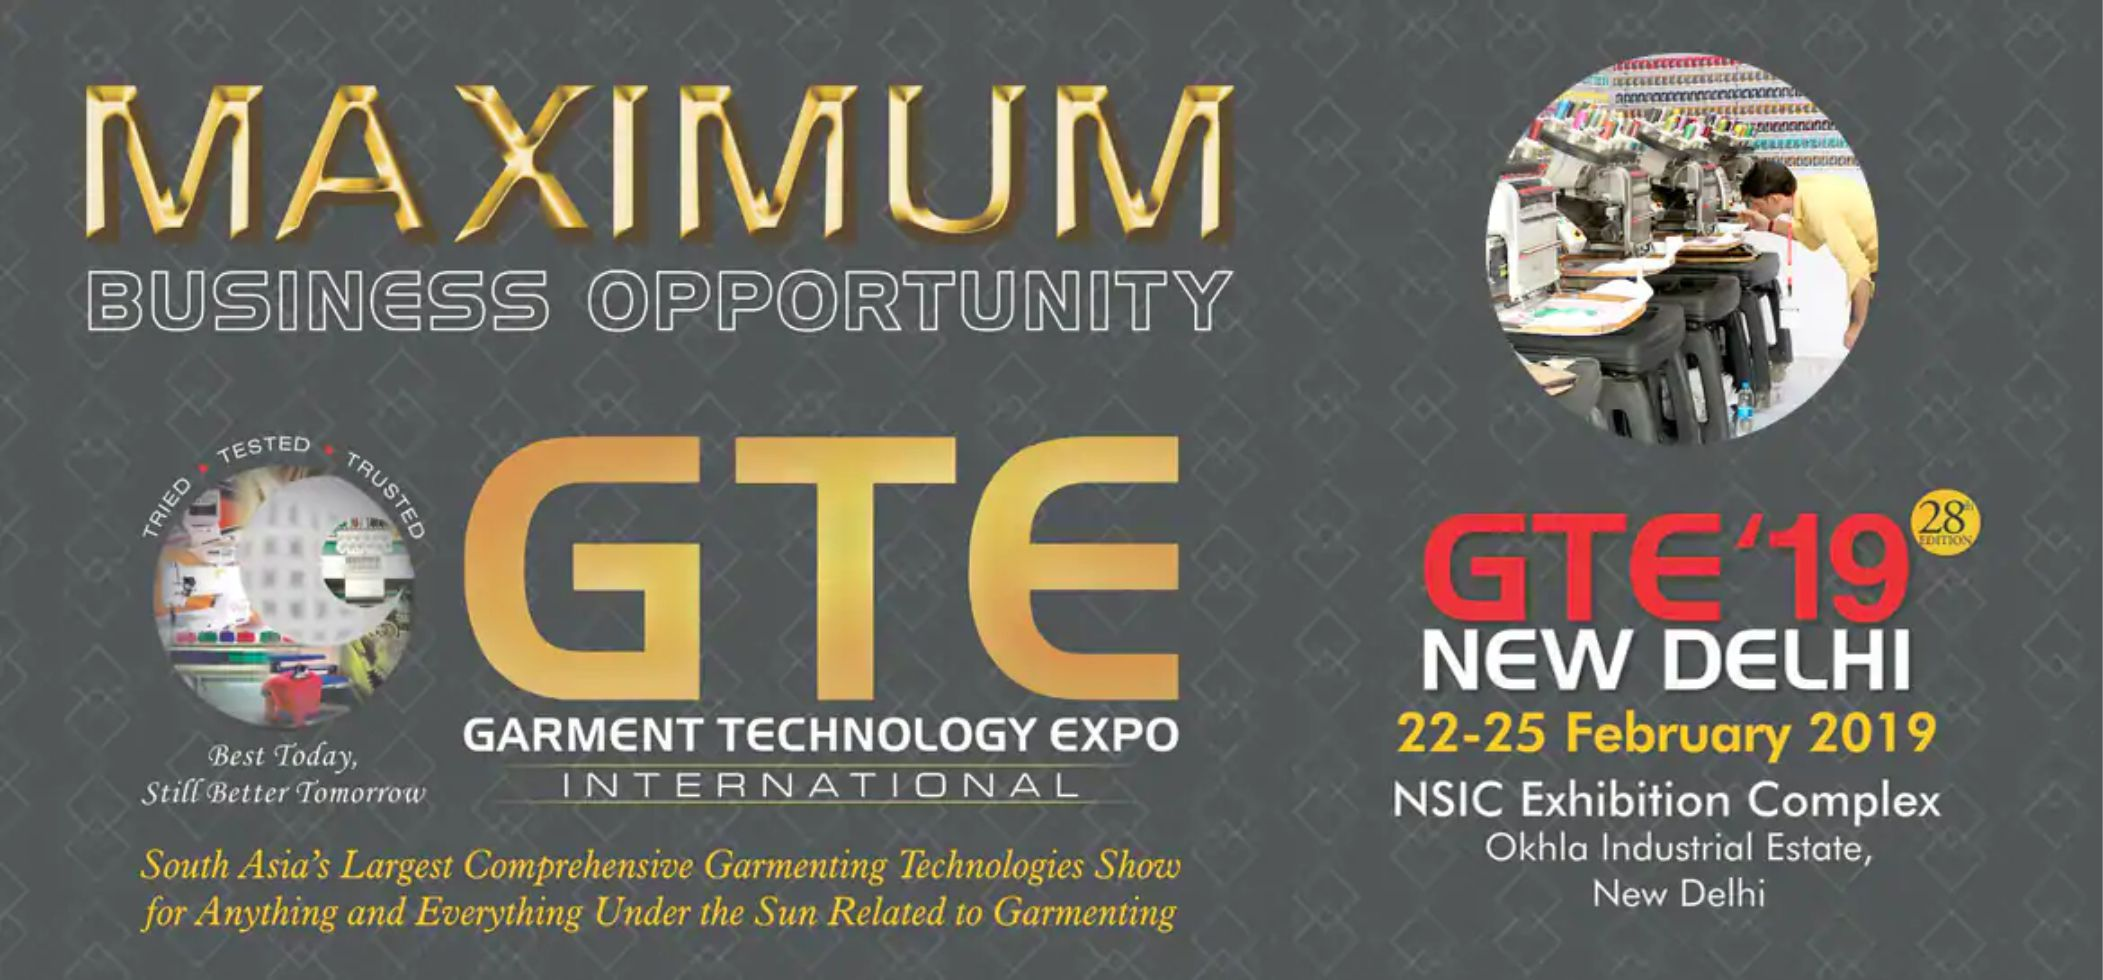 Garment Technology Expo